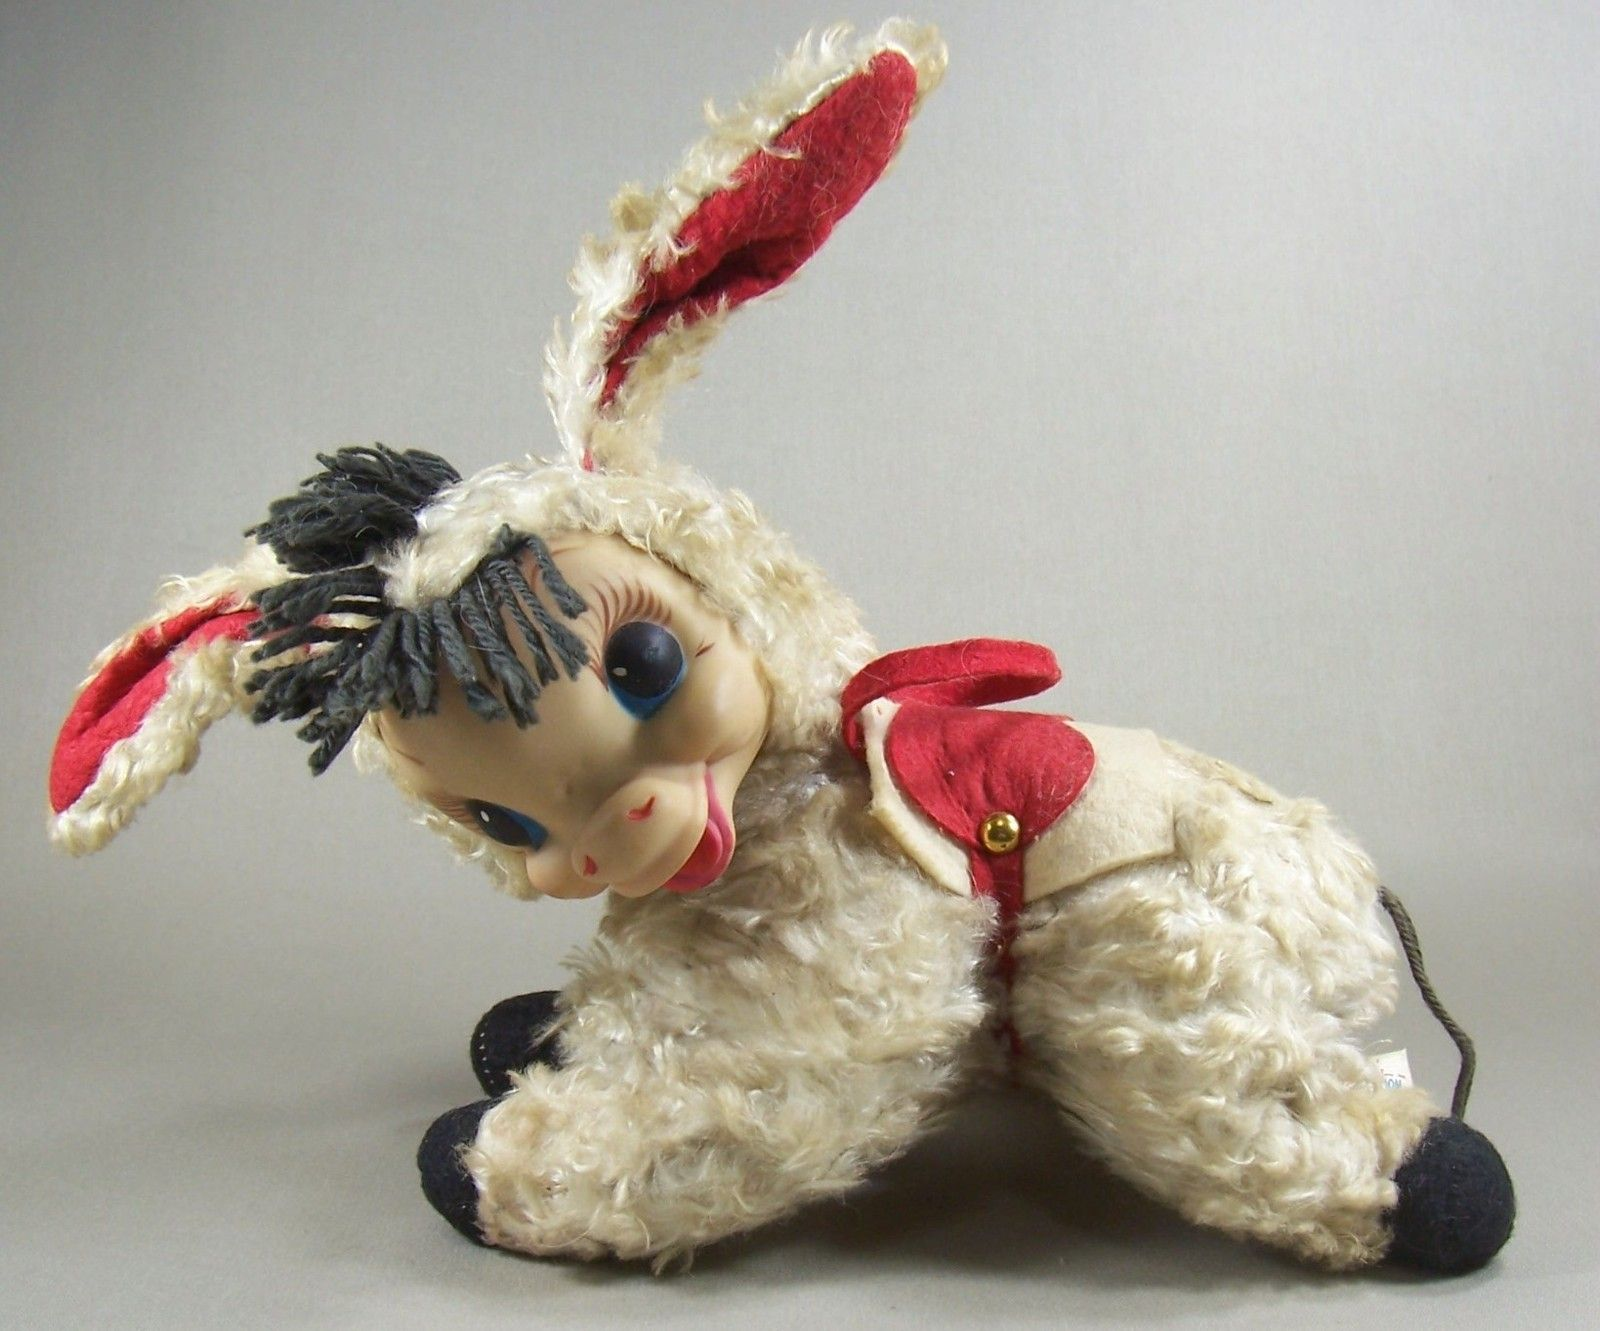 Vintage Rushton donkey found on eBay | Rushton Toys and ...